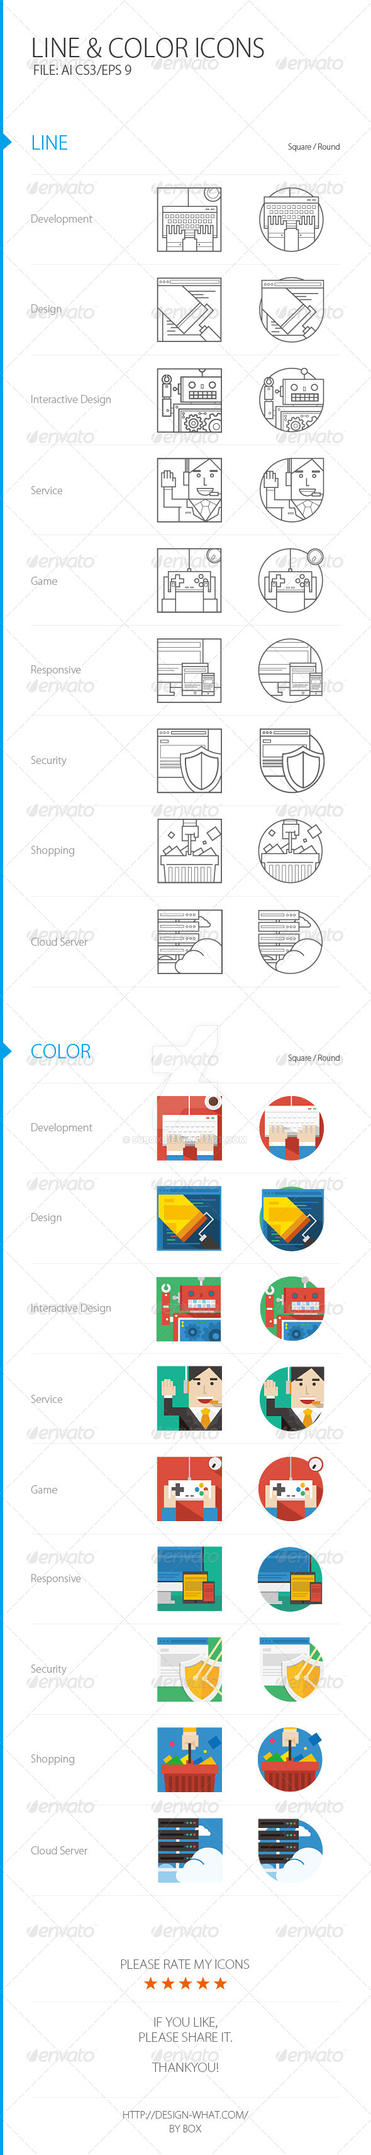 Line Color ICONs by 90Box